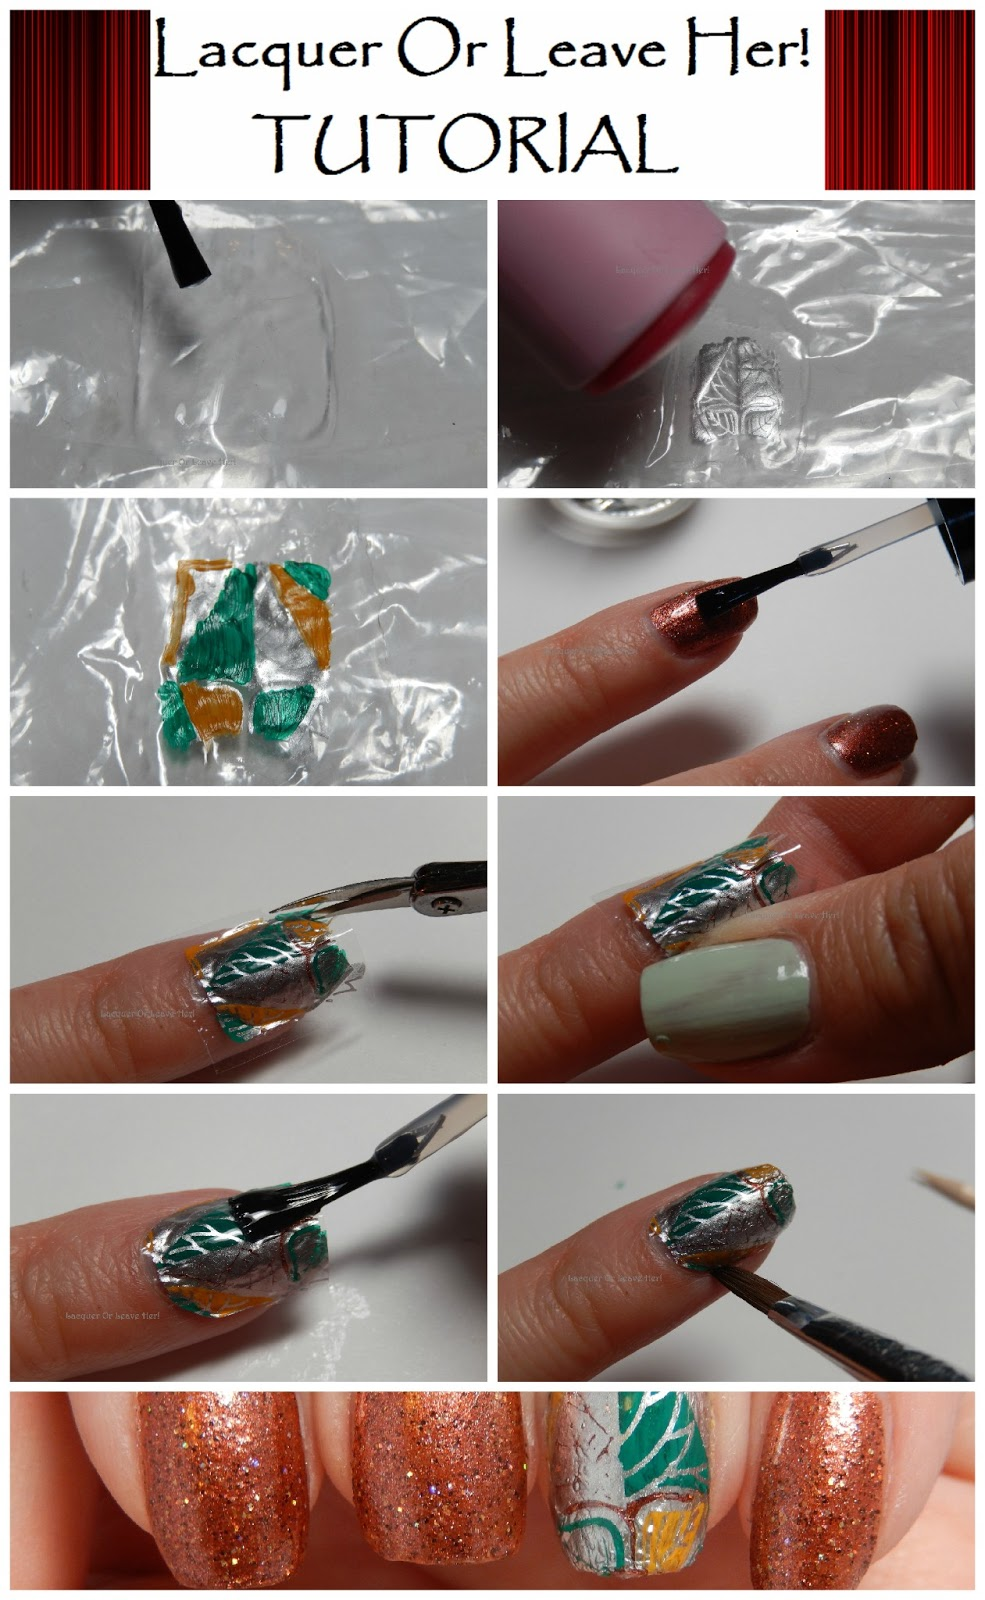 Lacquer Or Leave Her Tutorial Homemade Decal Nail Wraps - How to make nail decals at home